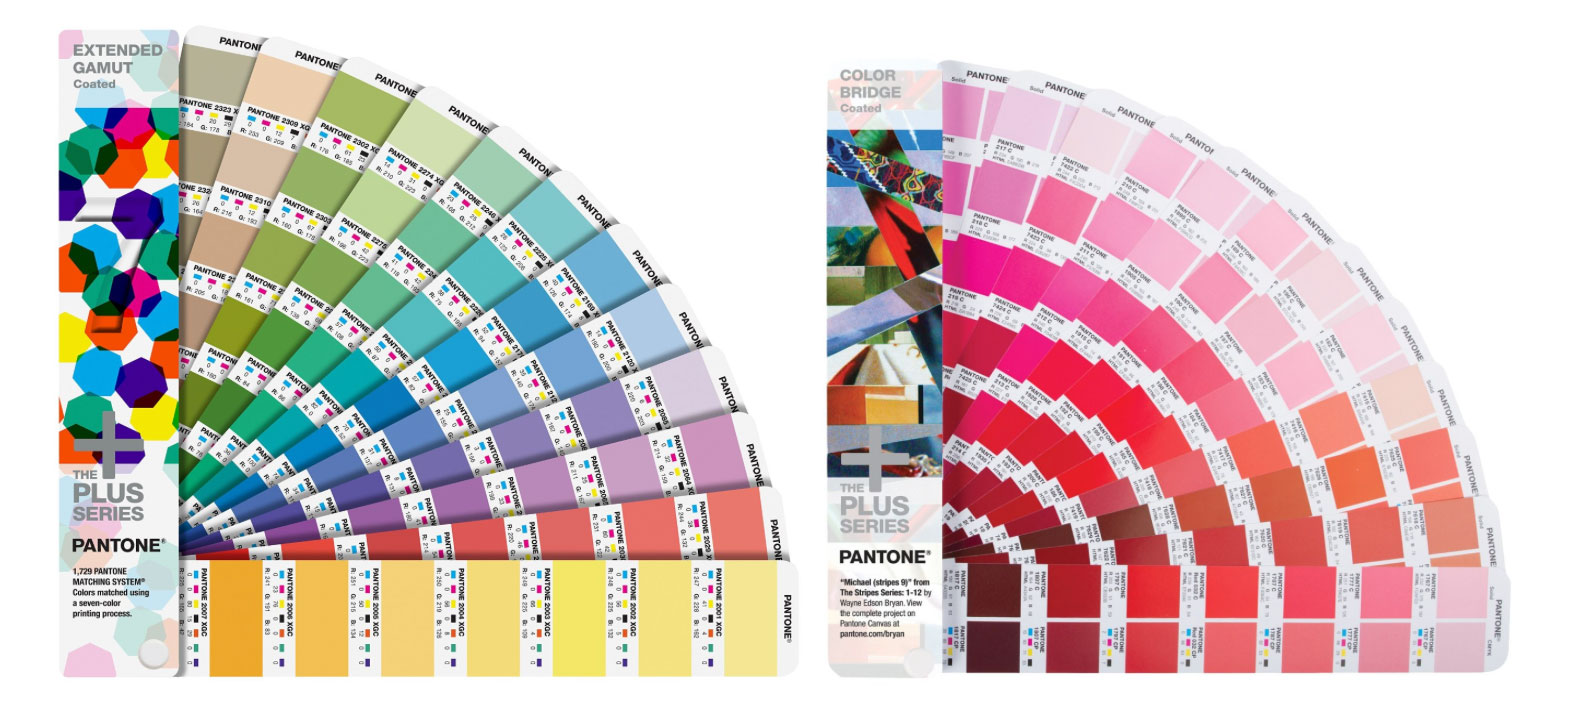 Pantone TPG Specifier Supplements